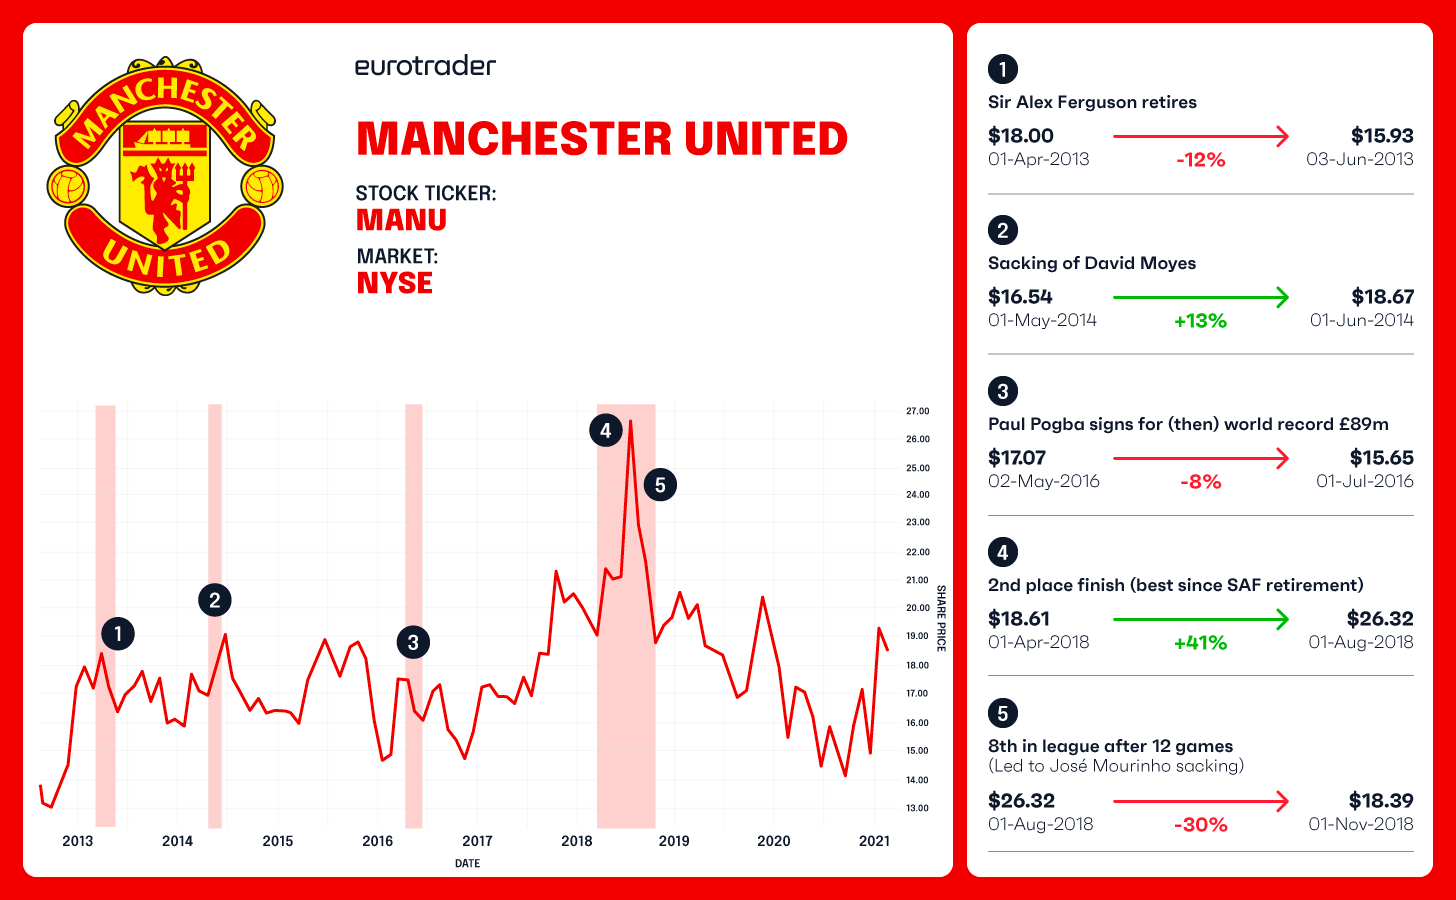 MANCHESTER UNITED football club share price